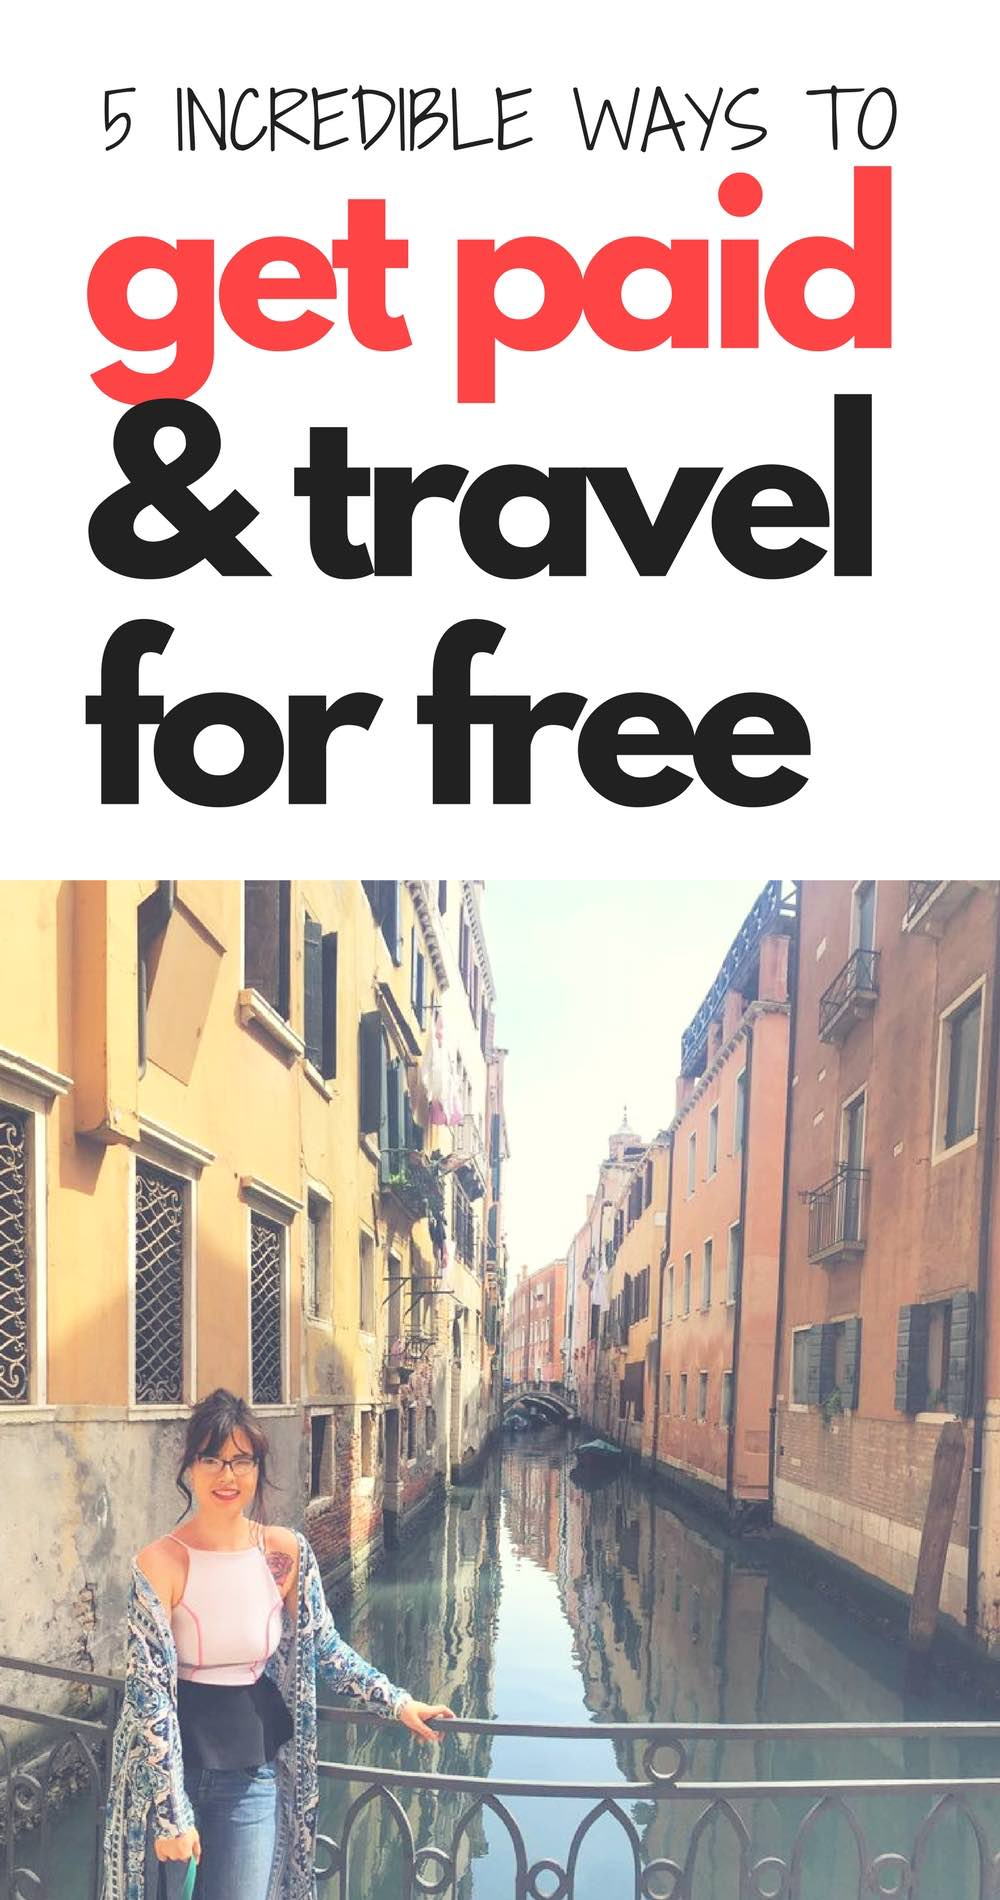 I'm always looking for travel for free trips and couchsurfing advice, WWOOF advice, and volunteer abroad trips. Thanks for sharing!